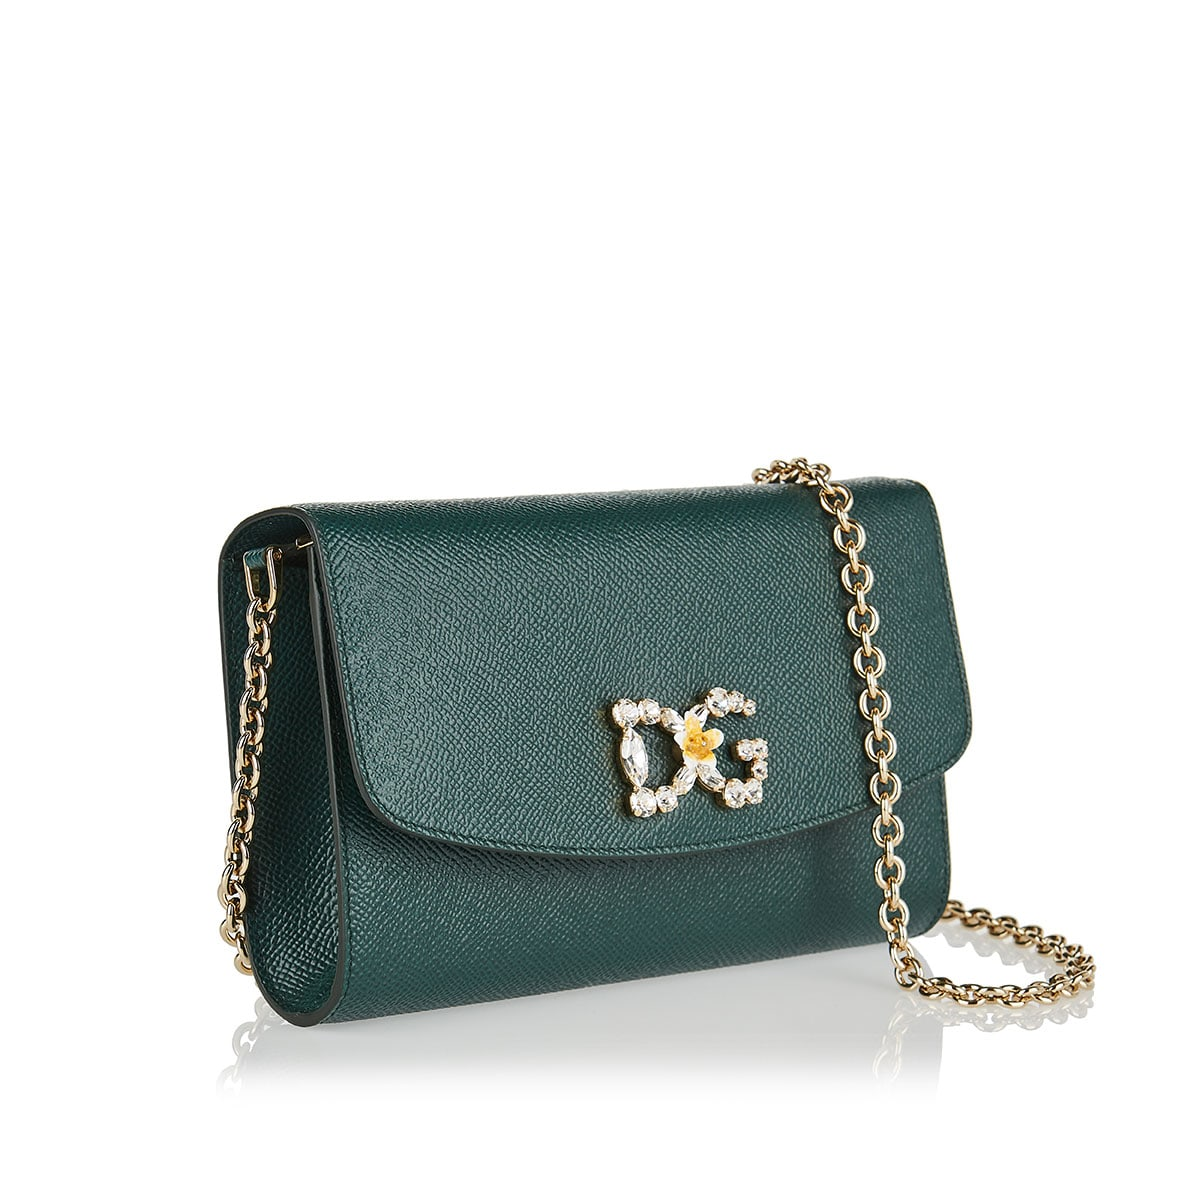 DG mini leather shoulder bag